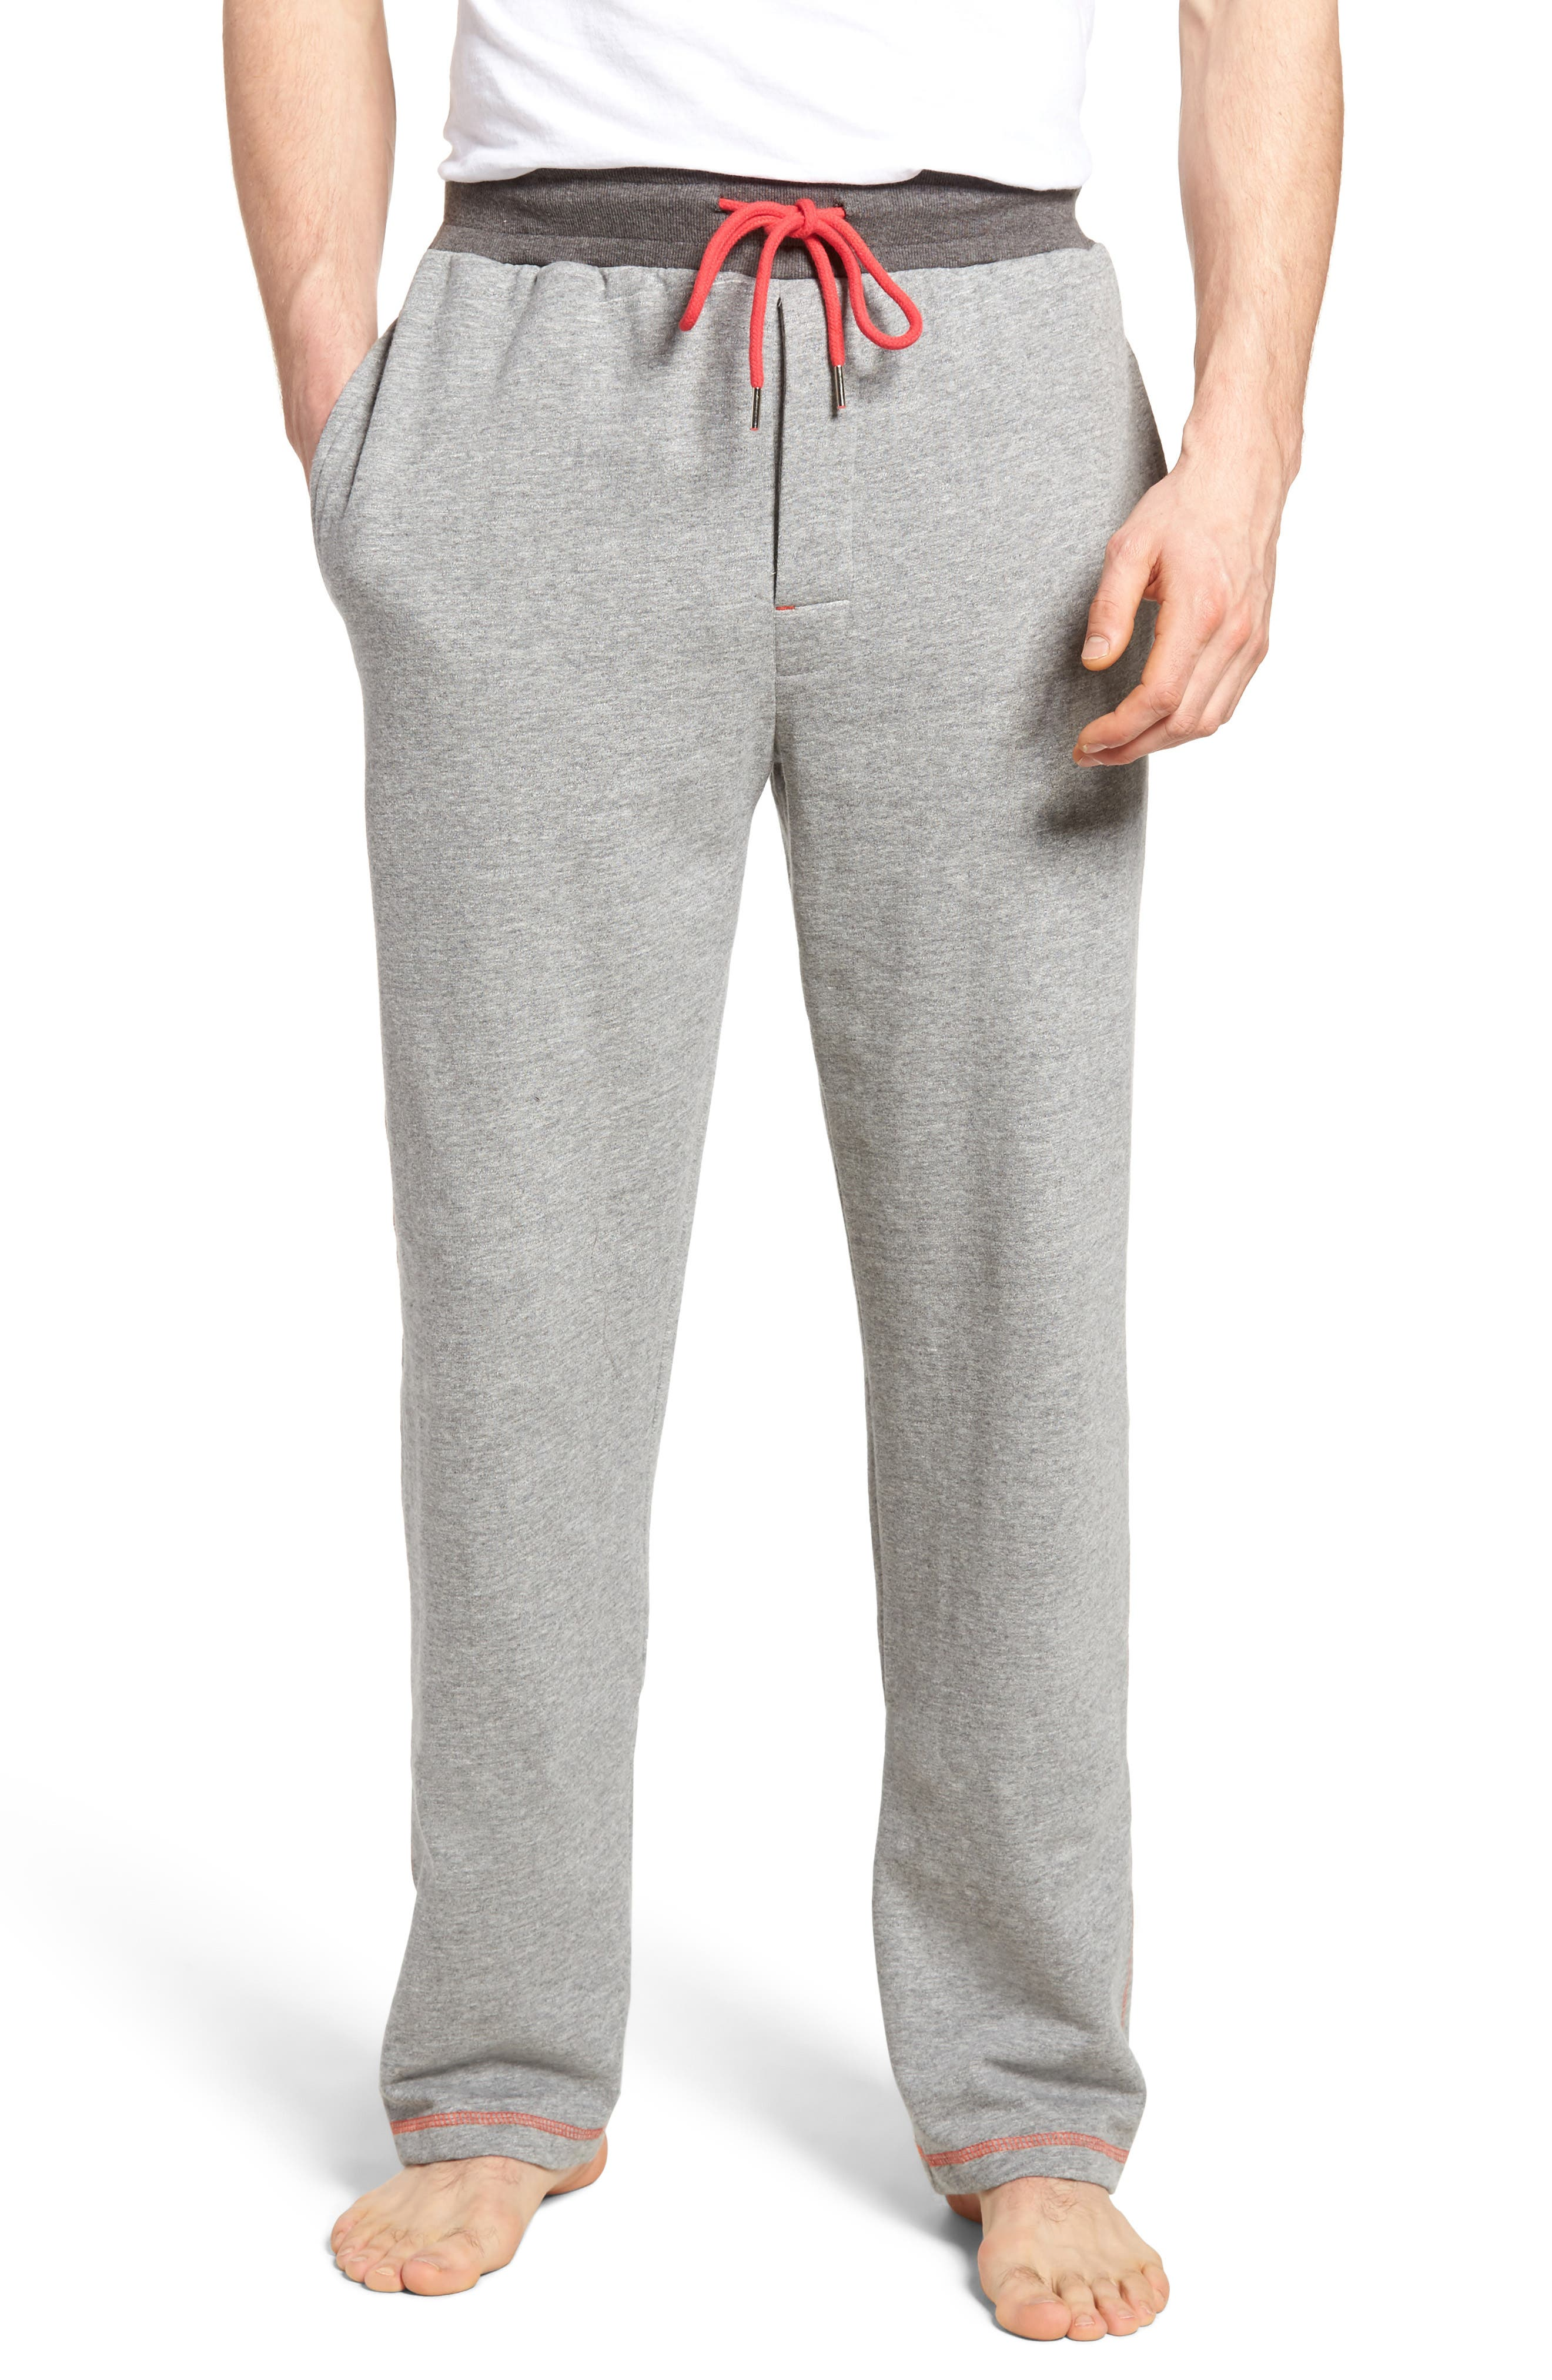 Bhooka Cotton Blend Lounge Pants,                         Main,                         color, Charcoal Heather